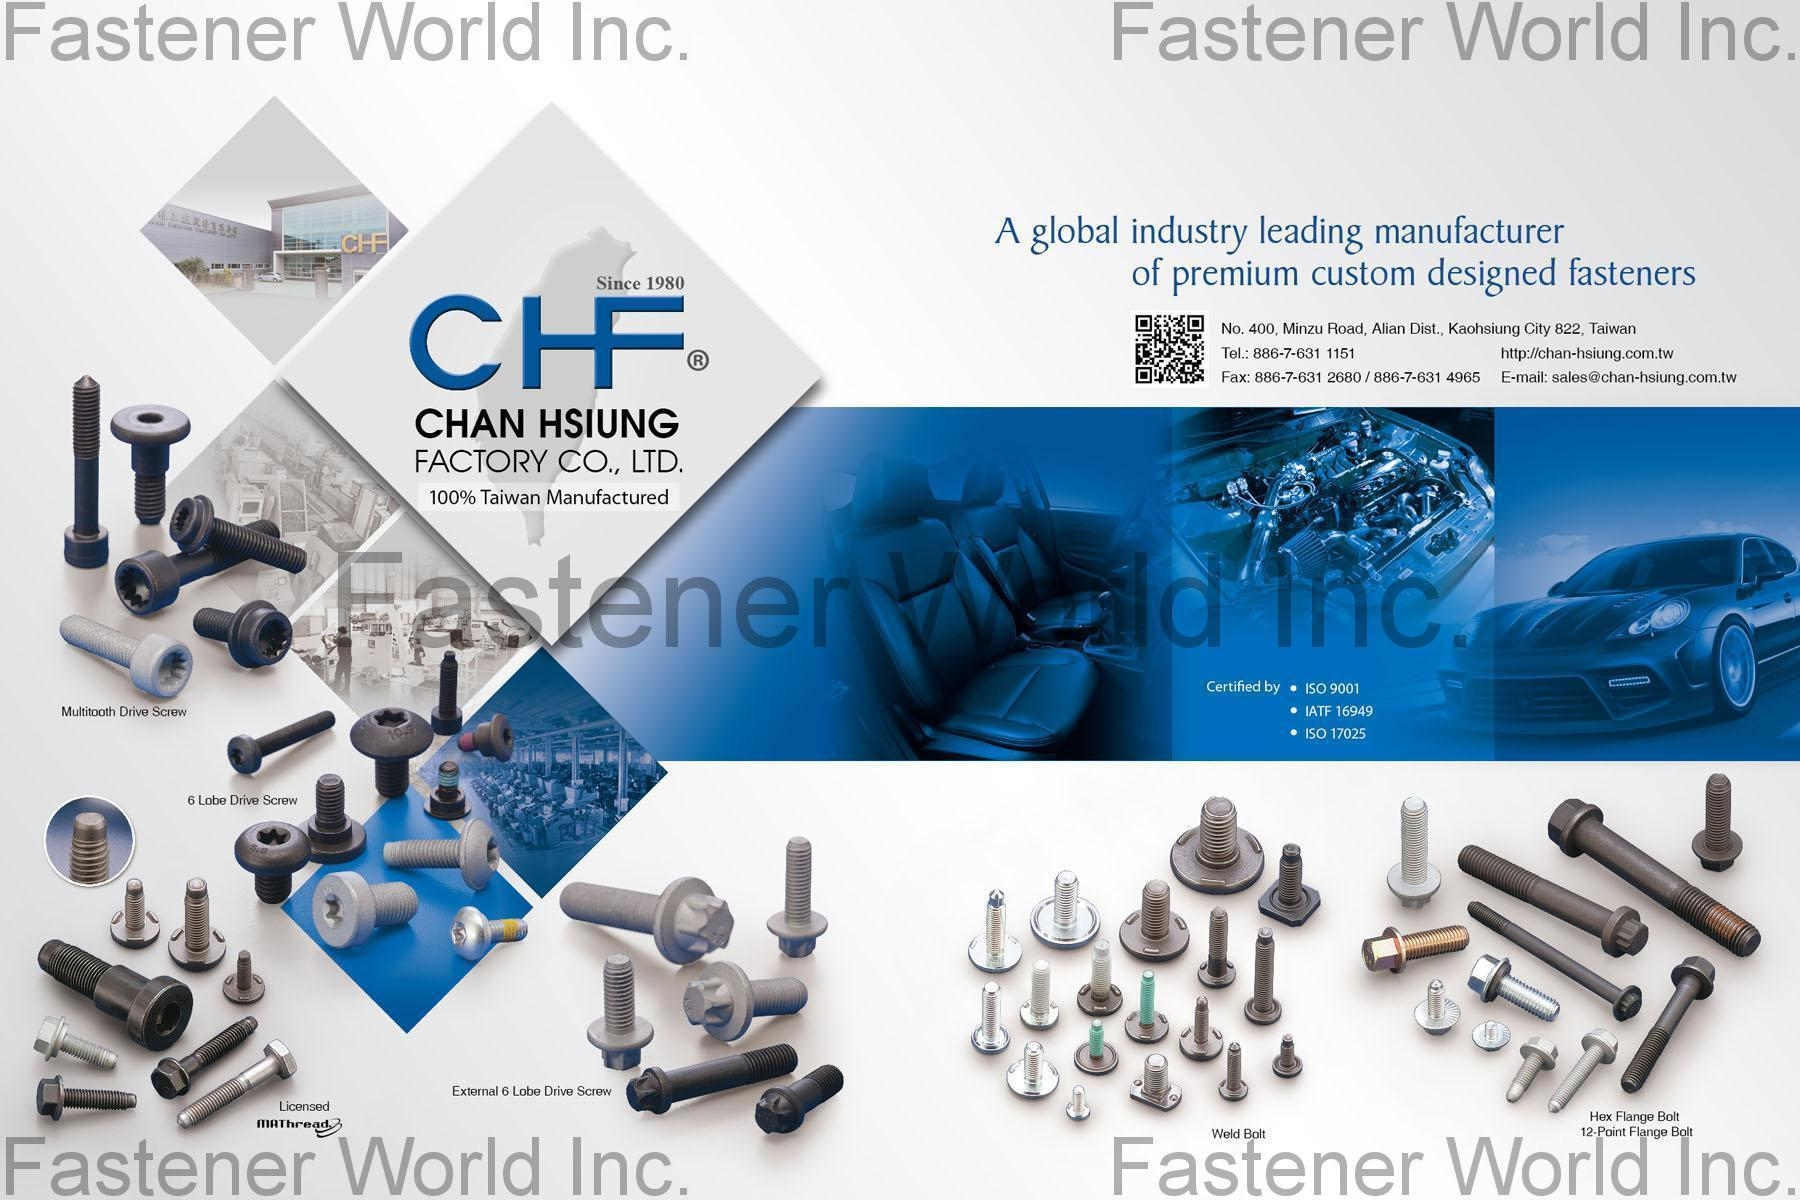 CHAN HSIUNG FACTORY CO., LTD.